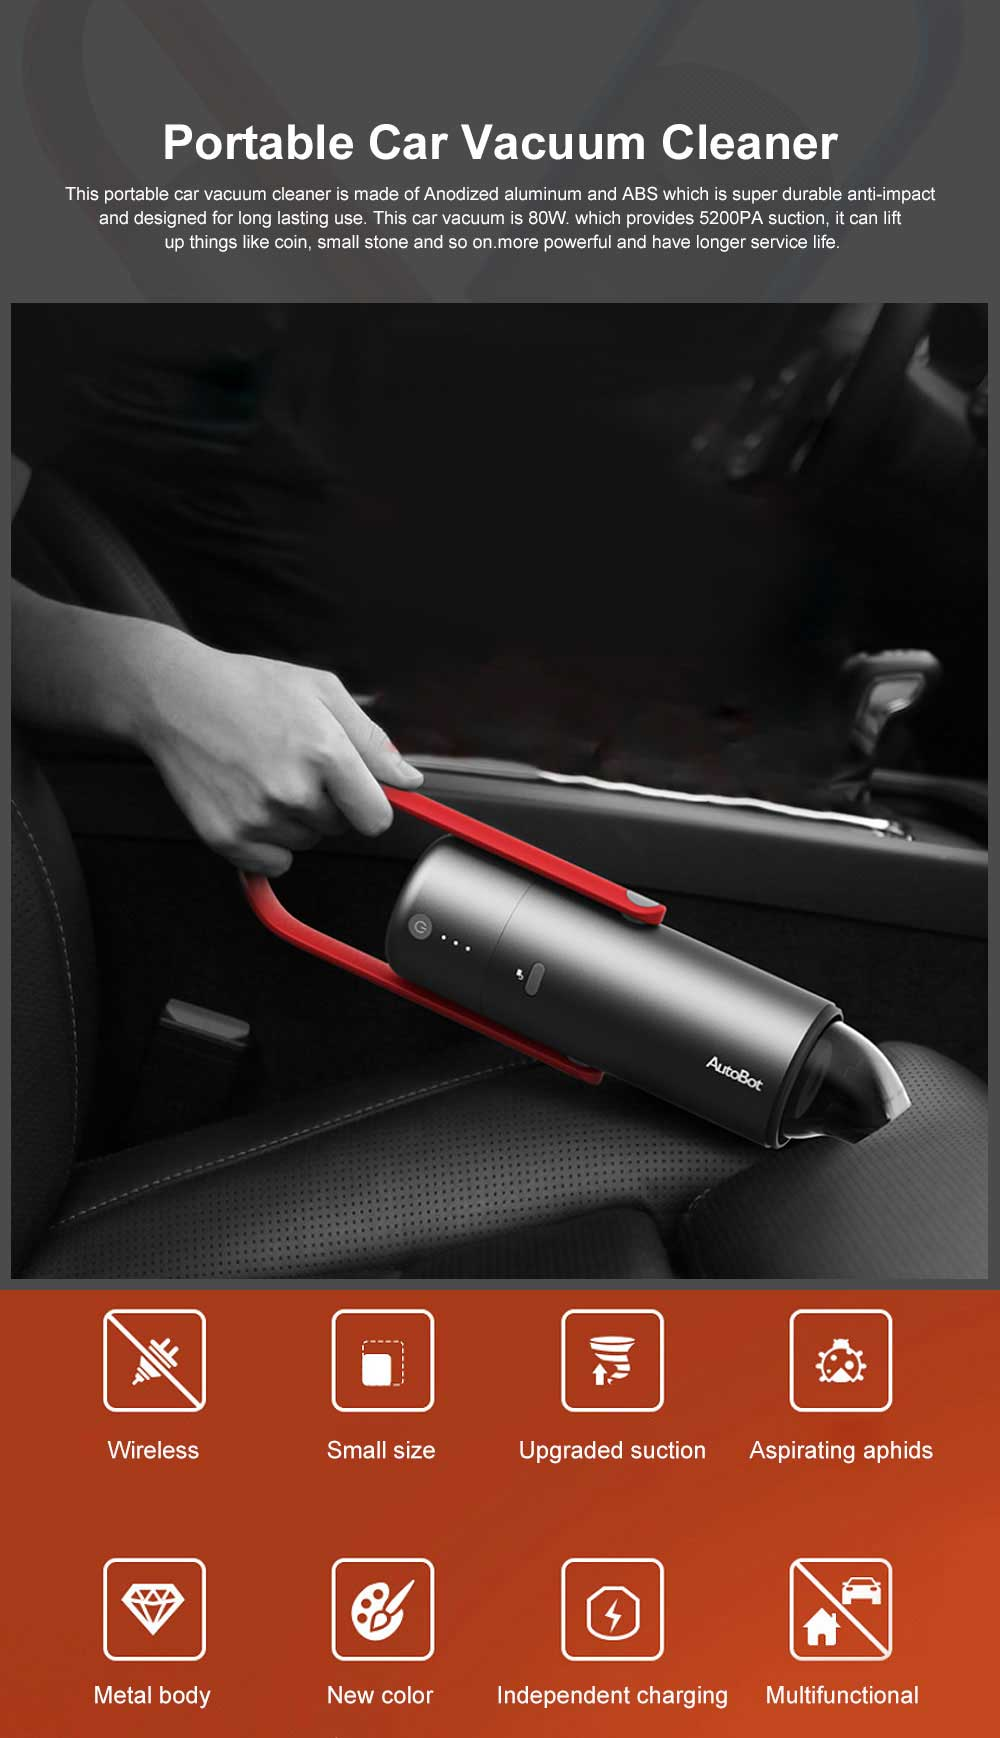 Portable Car Vacuum Cleaner High Power Handheld Car Cleaning Machine for Wool Fabric Dust Dirt Cigarette Ash Leaves Aphids 0